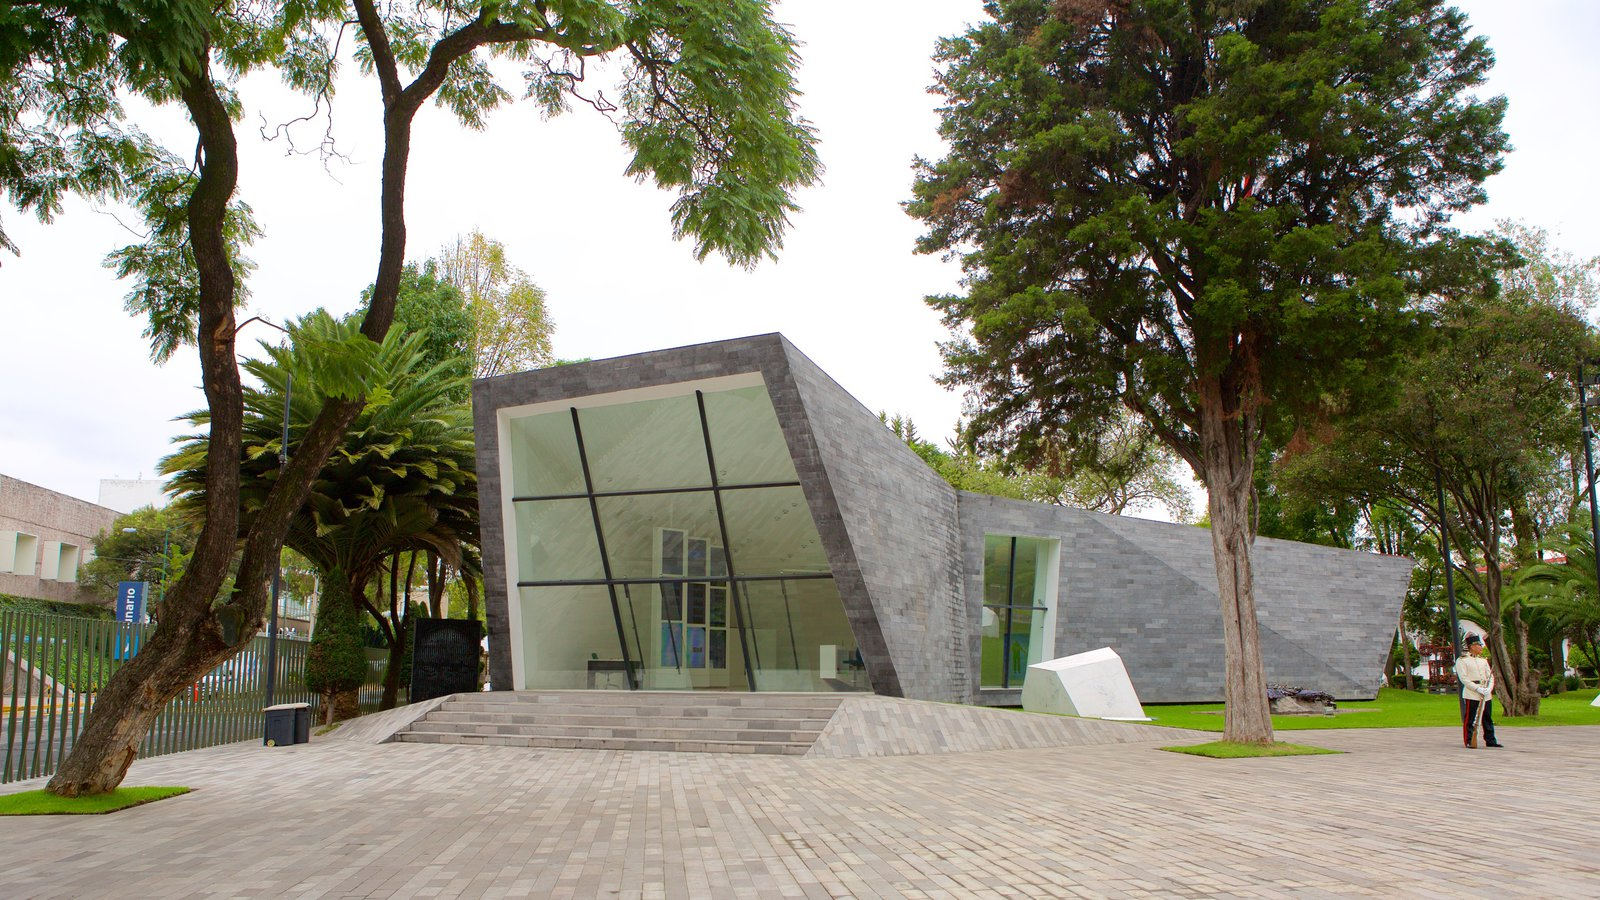 Mexico City featuring a square or plaza and modern architecture